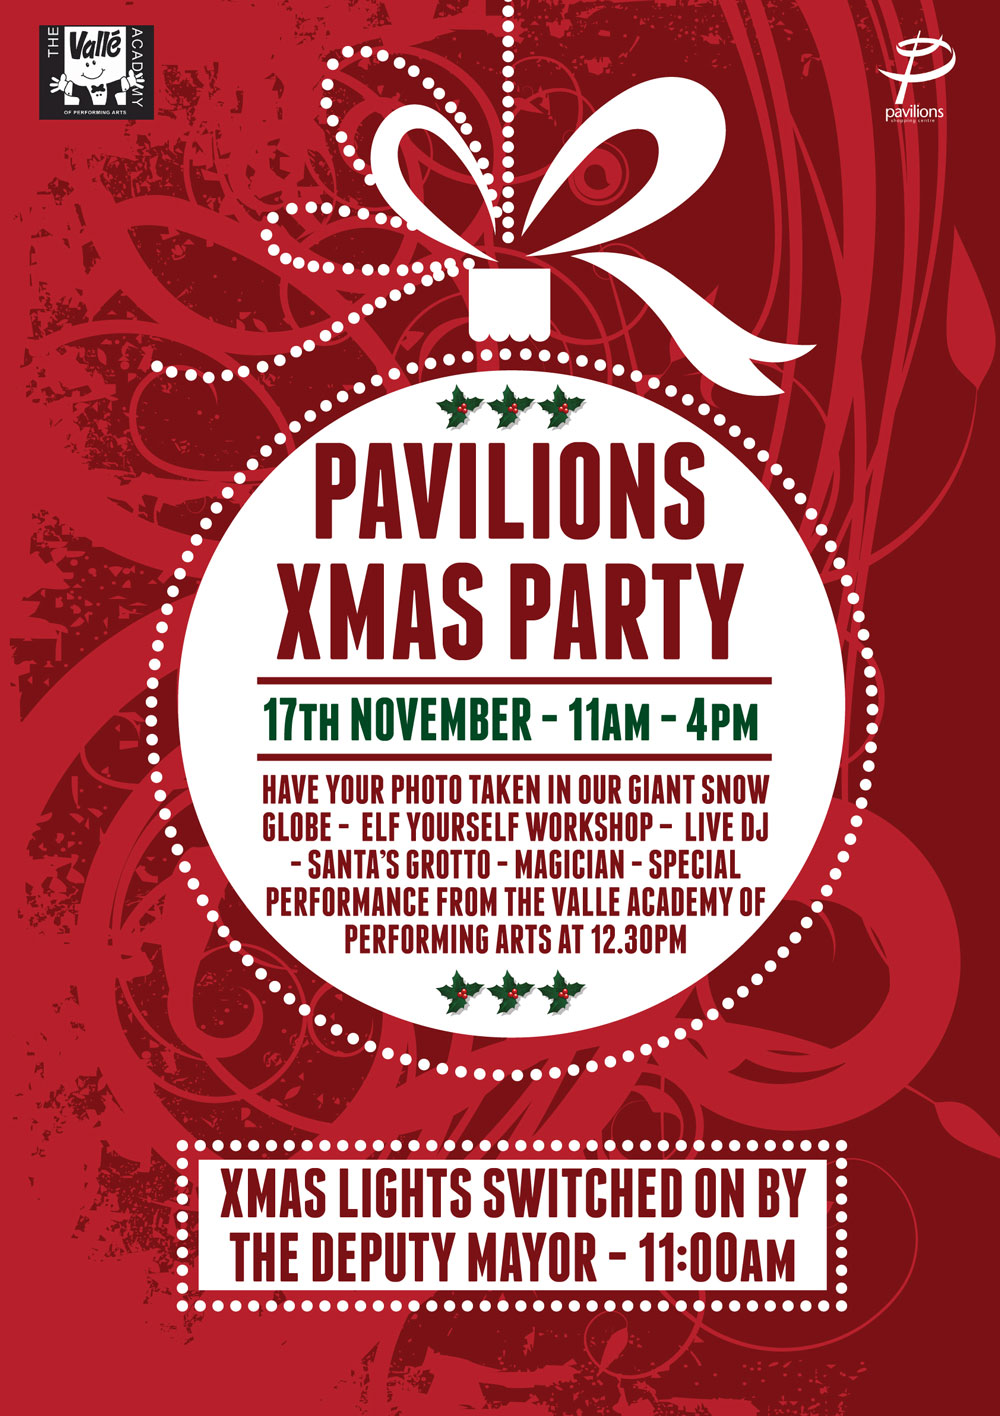 Christmas Party Poster.Christmas Party 17th November Pavilions Waltham Cross